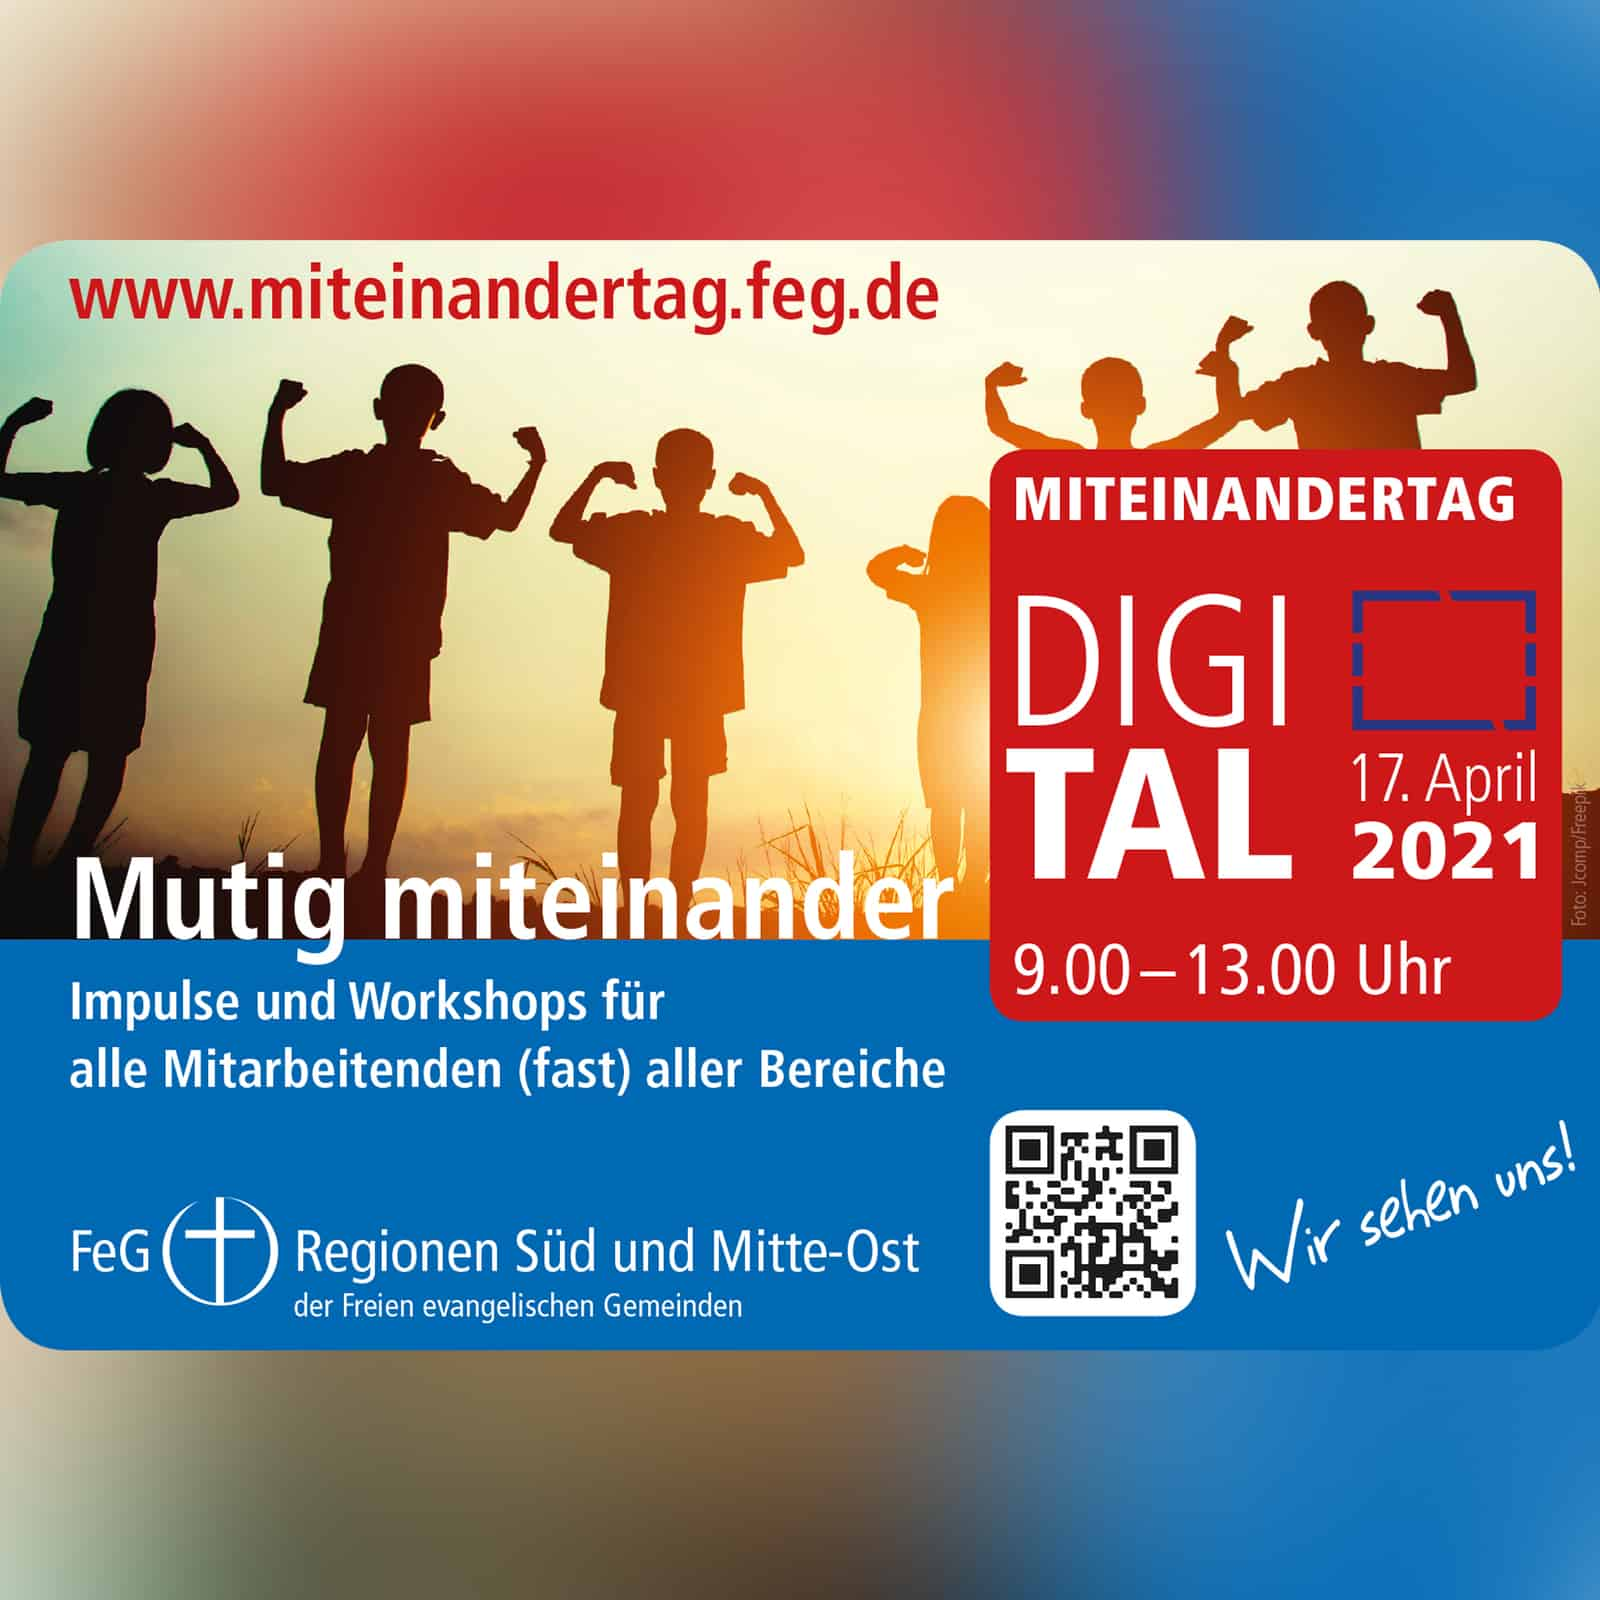 You are currently viewing Miteinandertag / 17. April